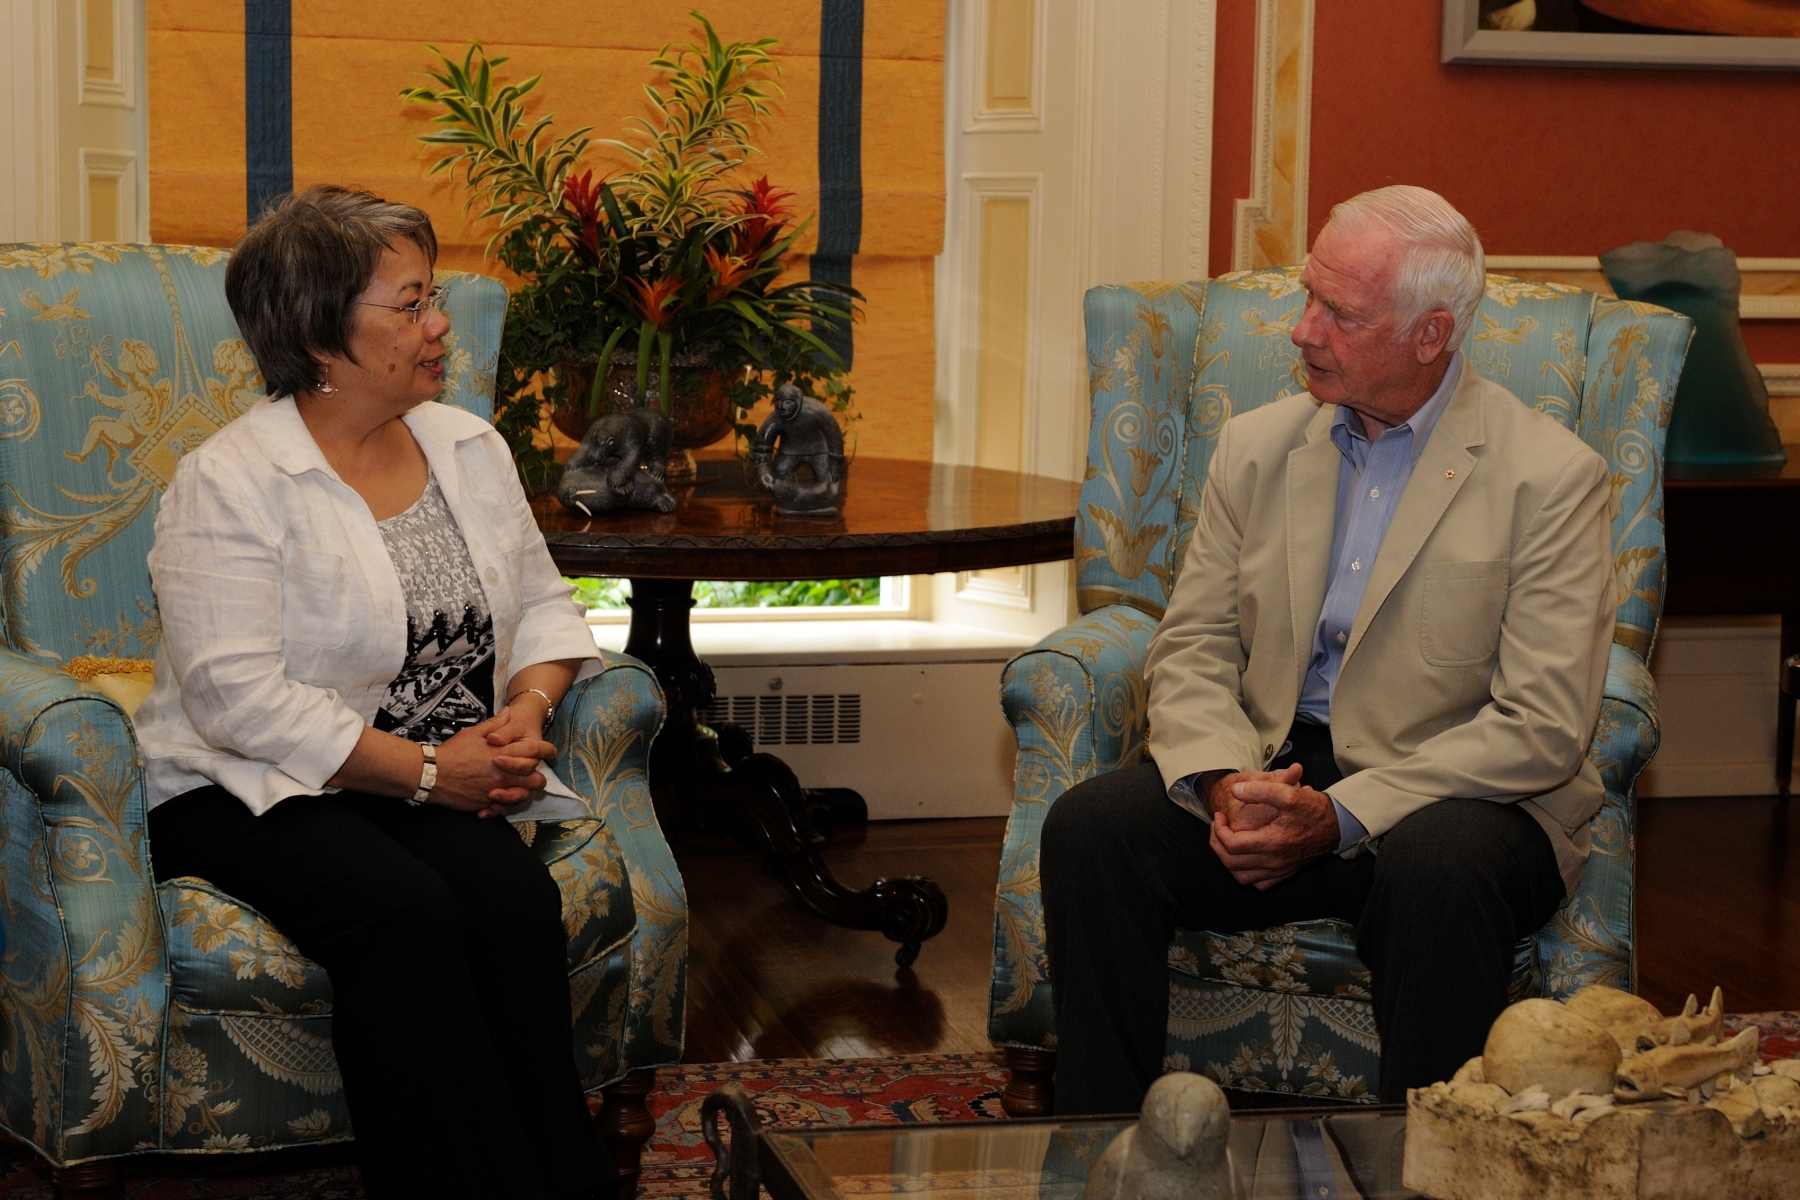 The official program for Nunavut began at Rideau Hall, in Ottawa, with a courtesy call by the Premier of Nunavut.